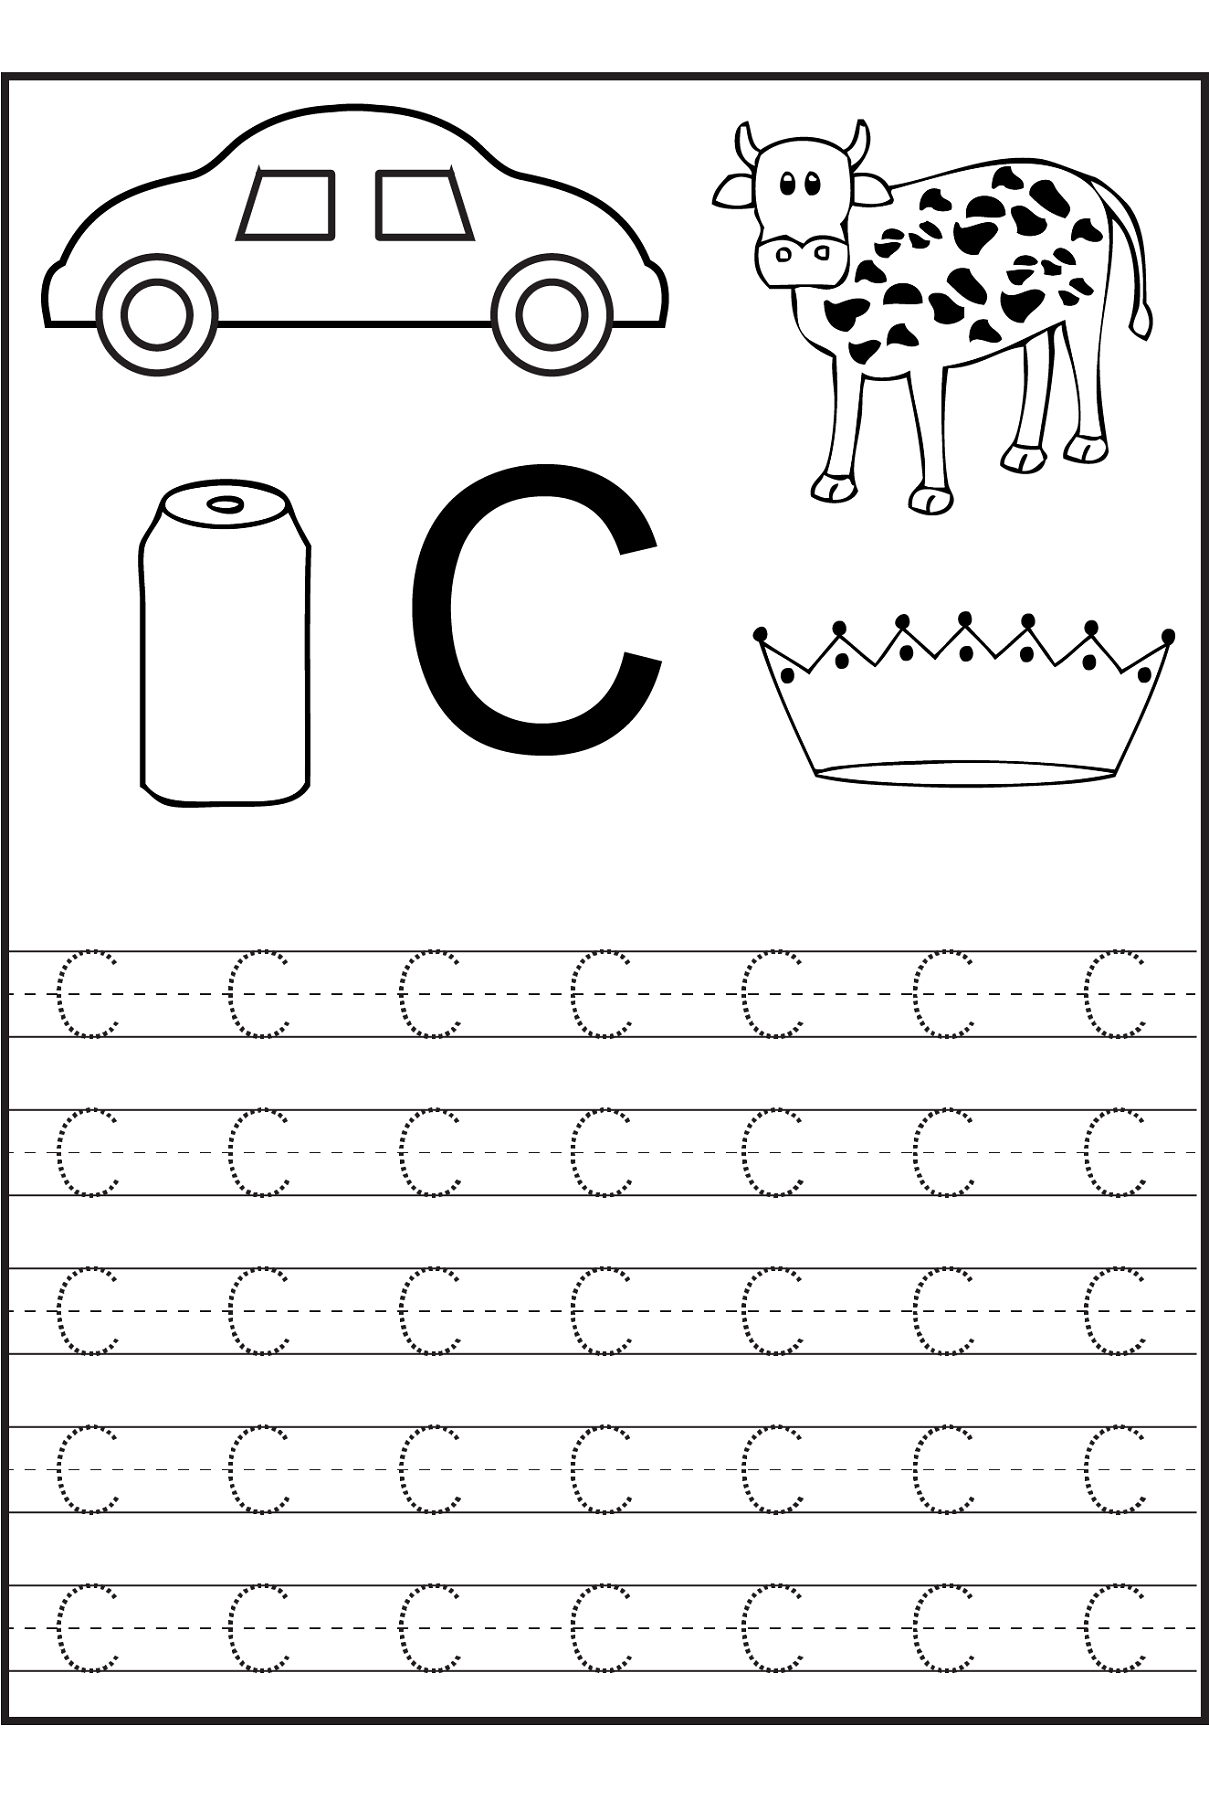 Letter C Coloring Worksheet